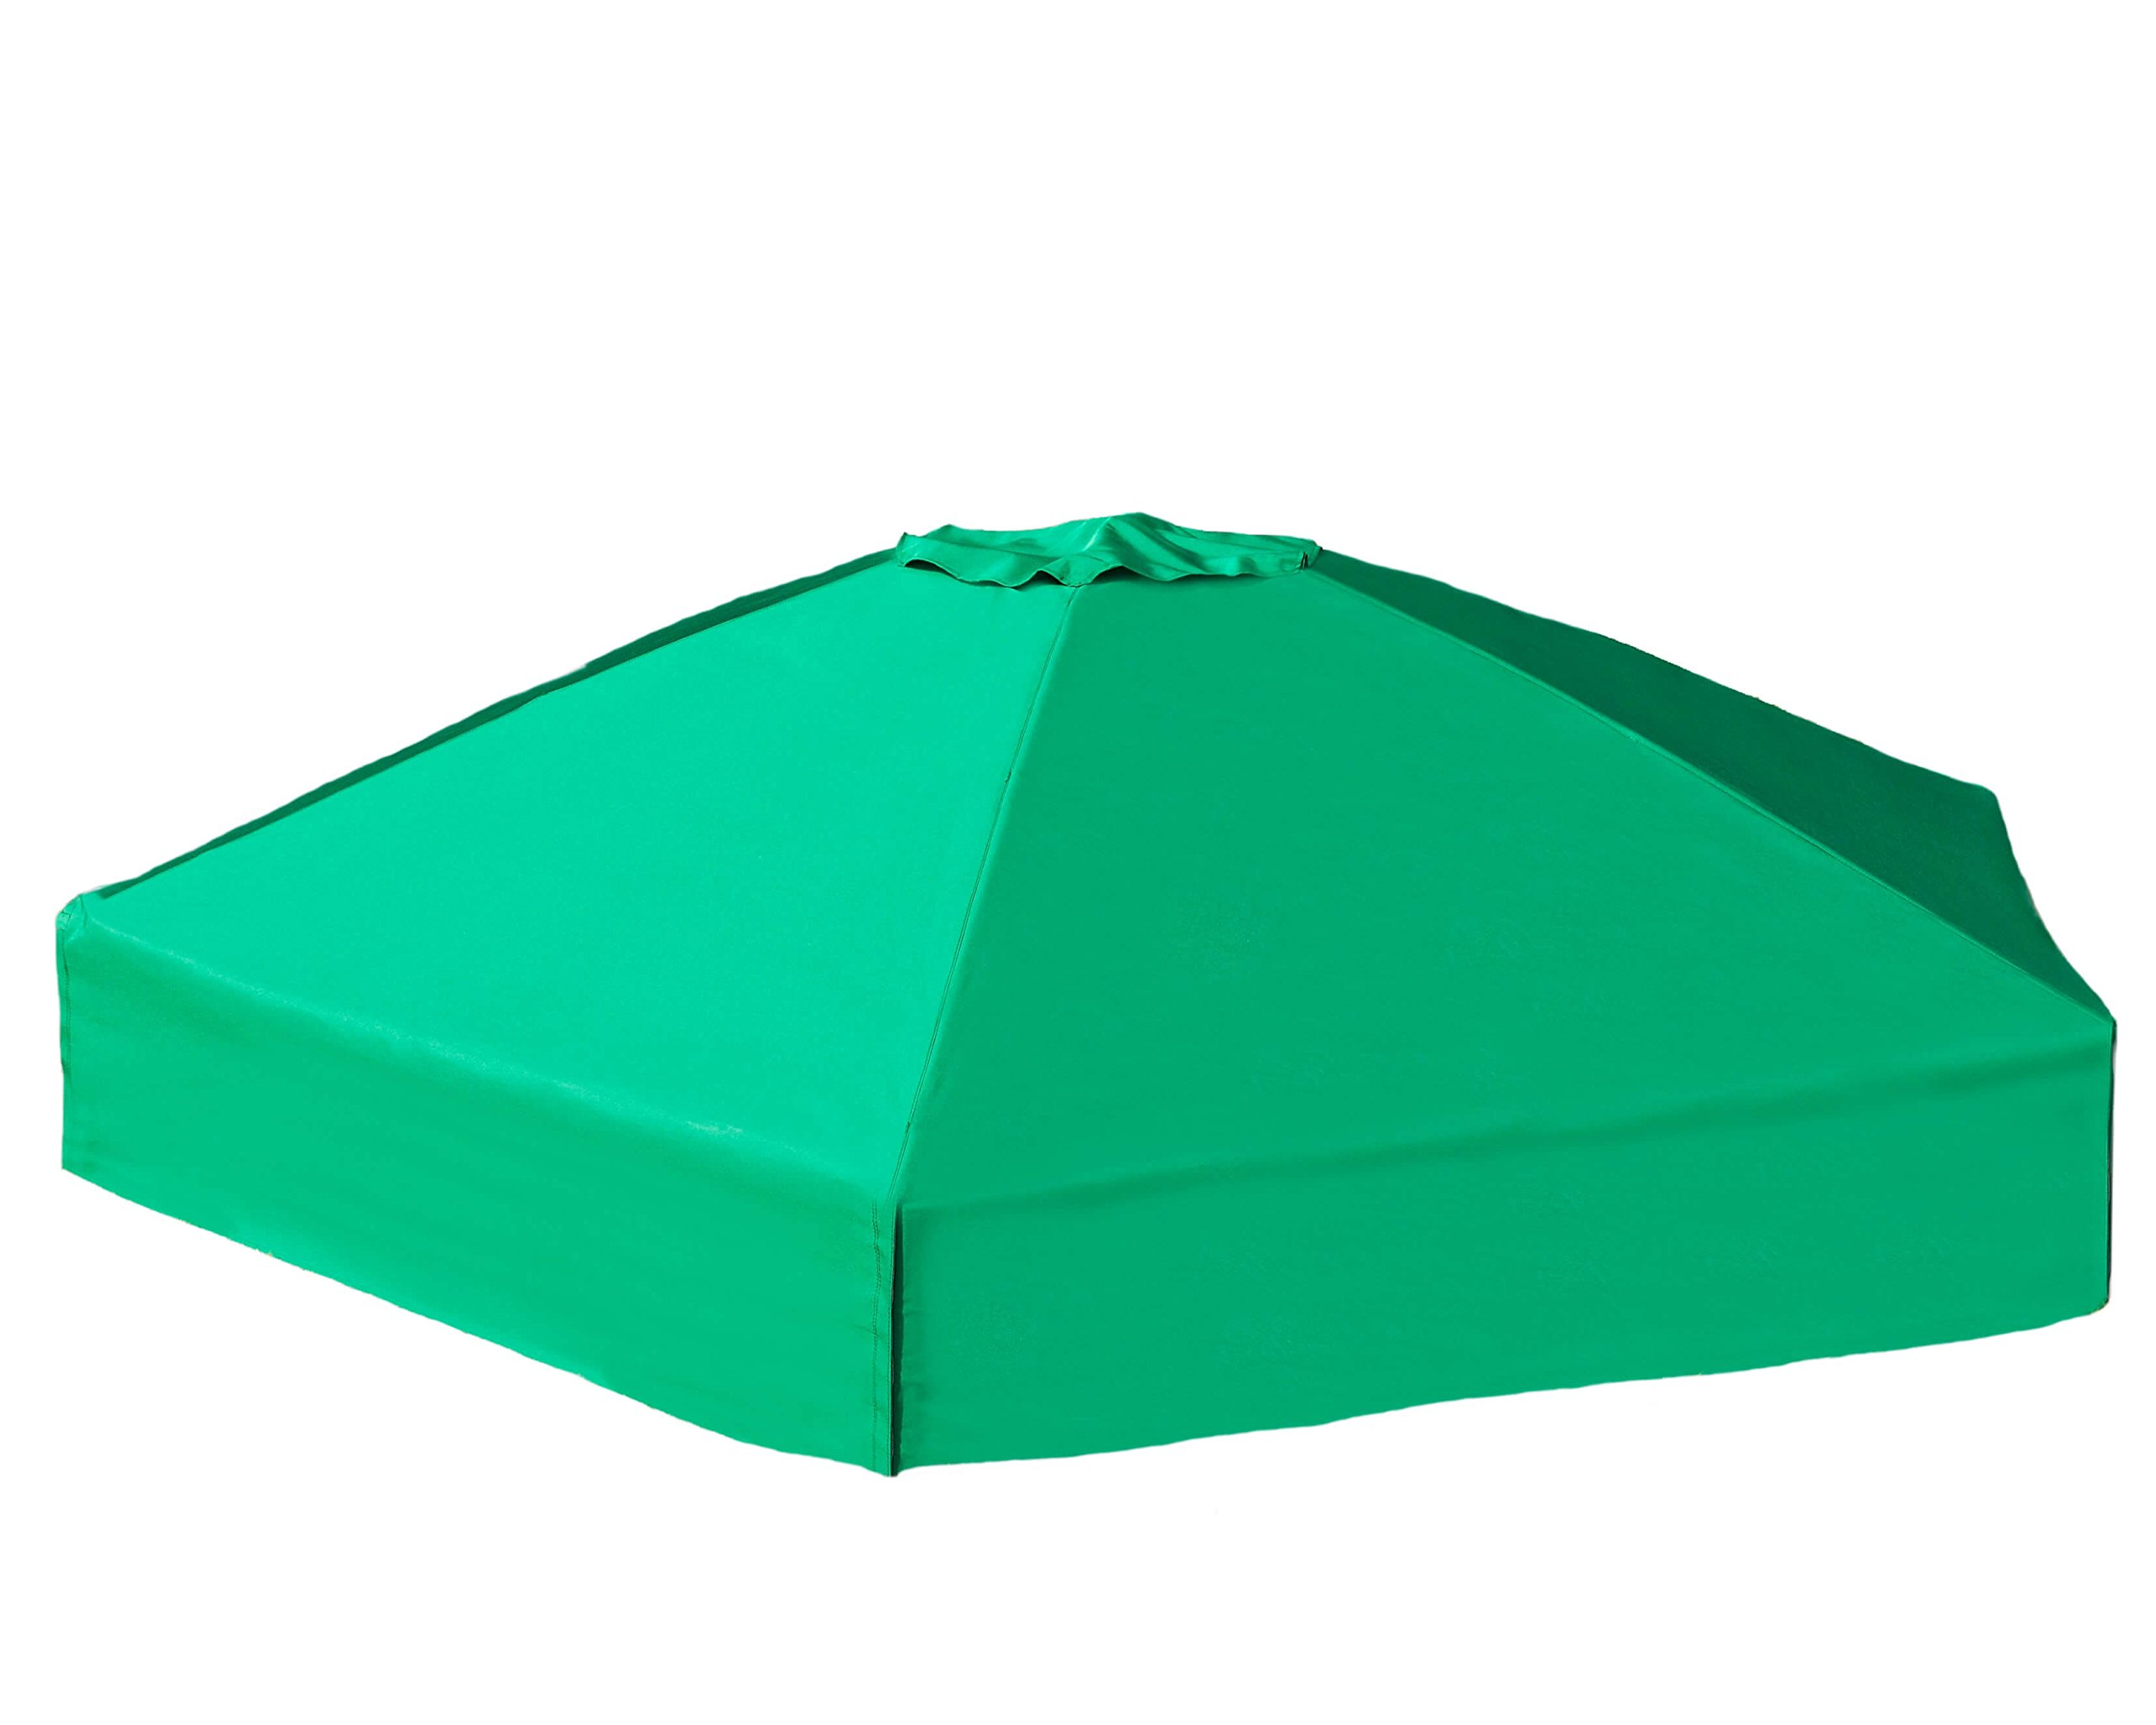 Frame It All 300001508 Hexagonal Collapsible Sandbox Cover, 7' x 8' x 13.5'' by Frame It All (Image #1)